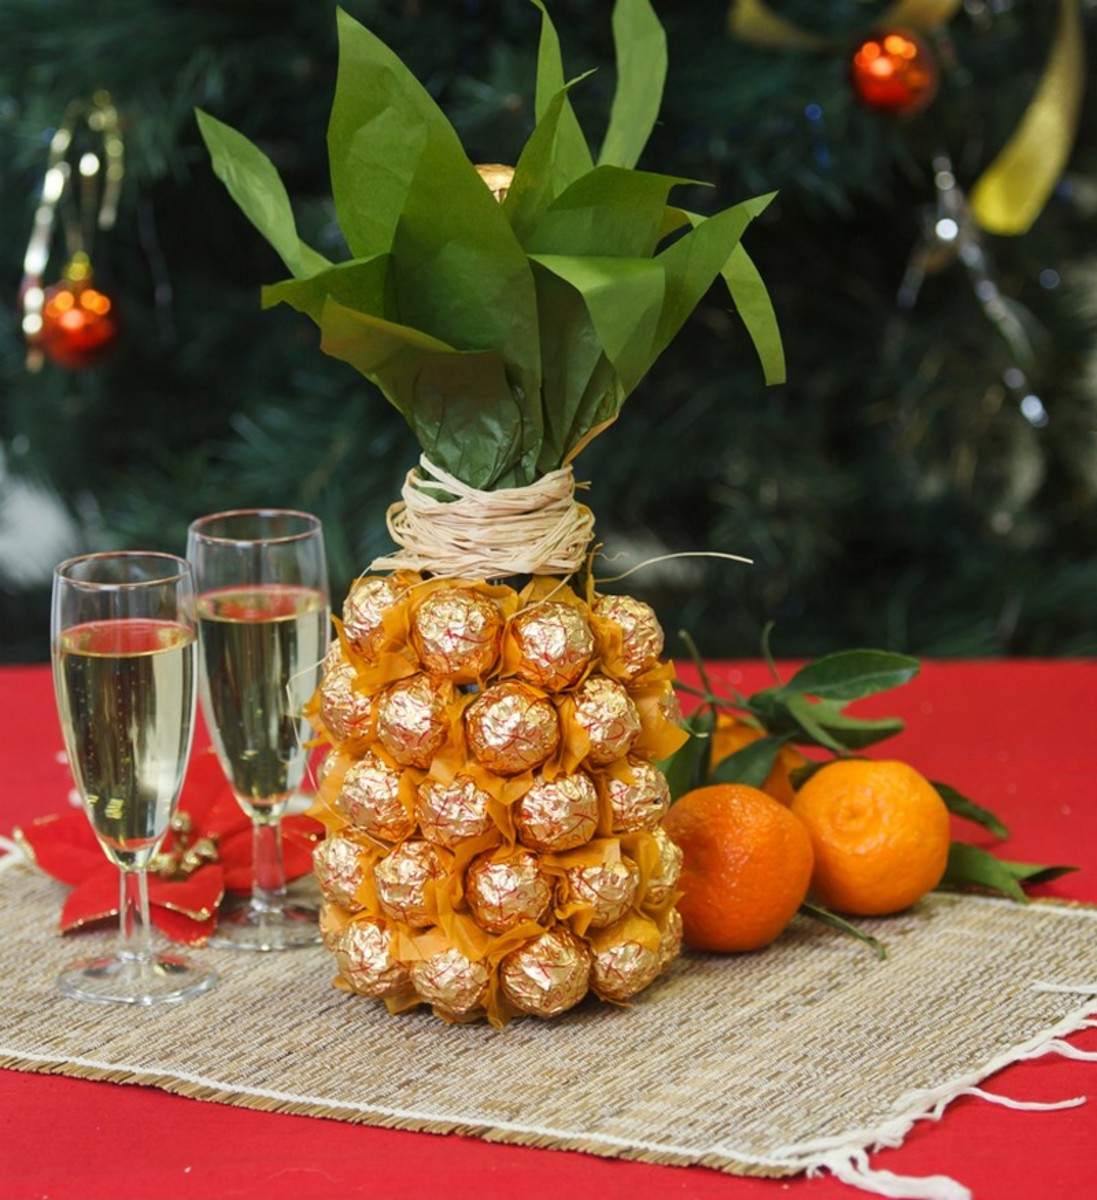 Bottle of champagne covered with Ferrero Rocher candy makes an awesome hostess gift.